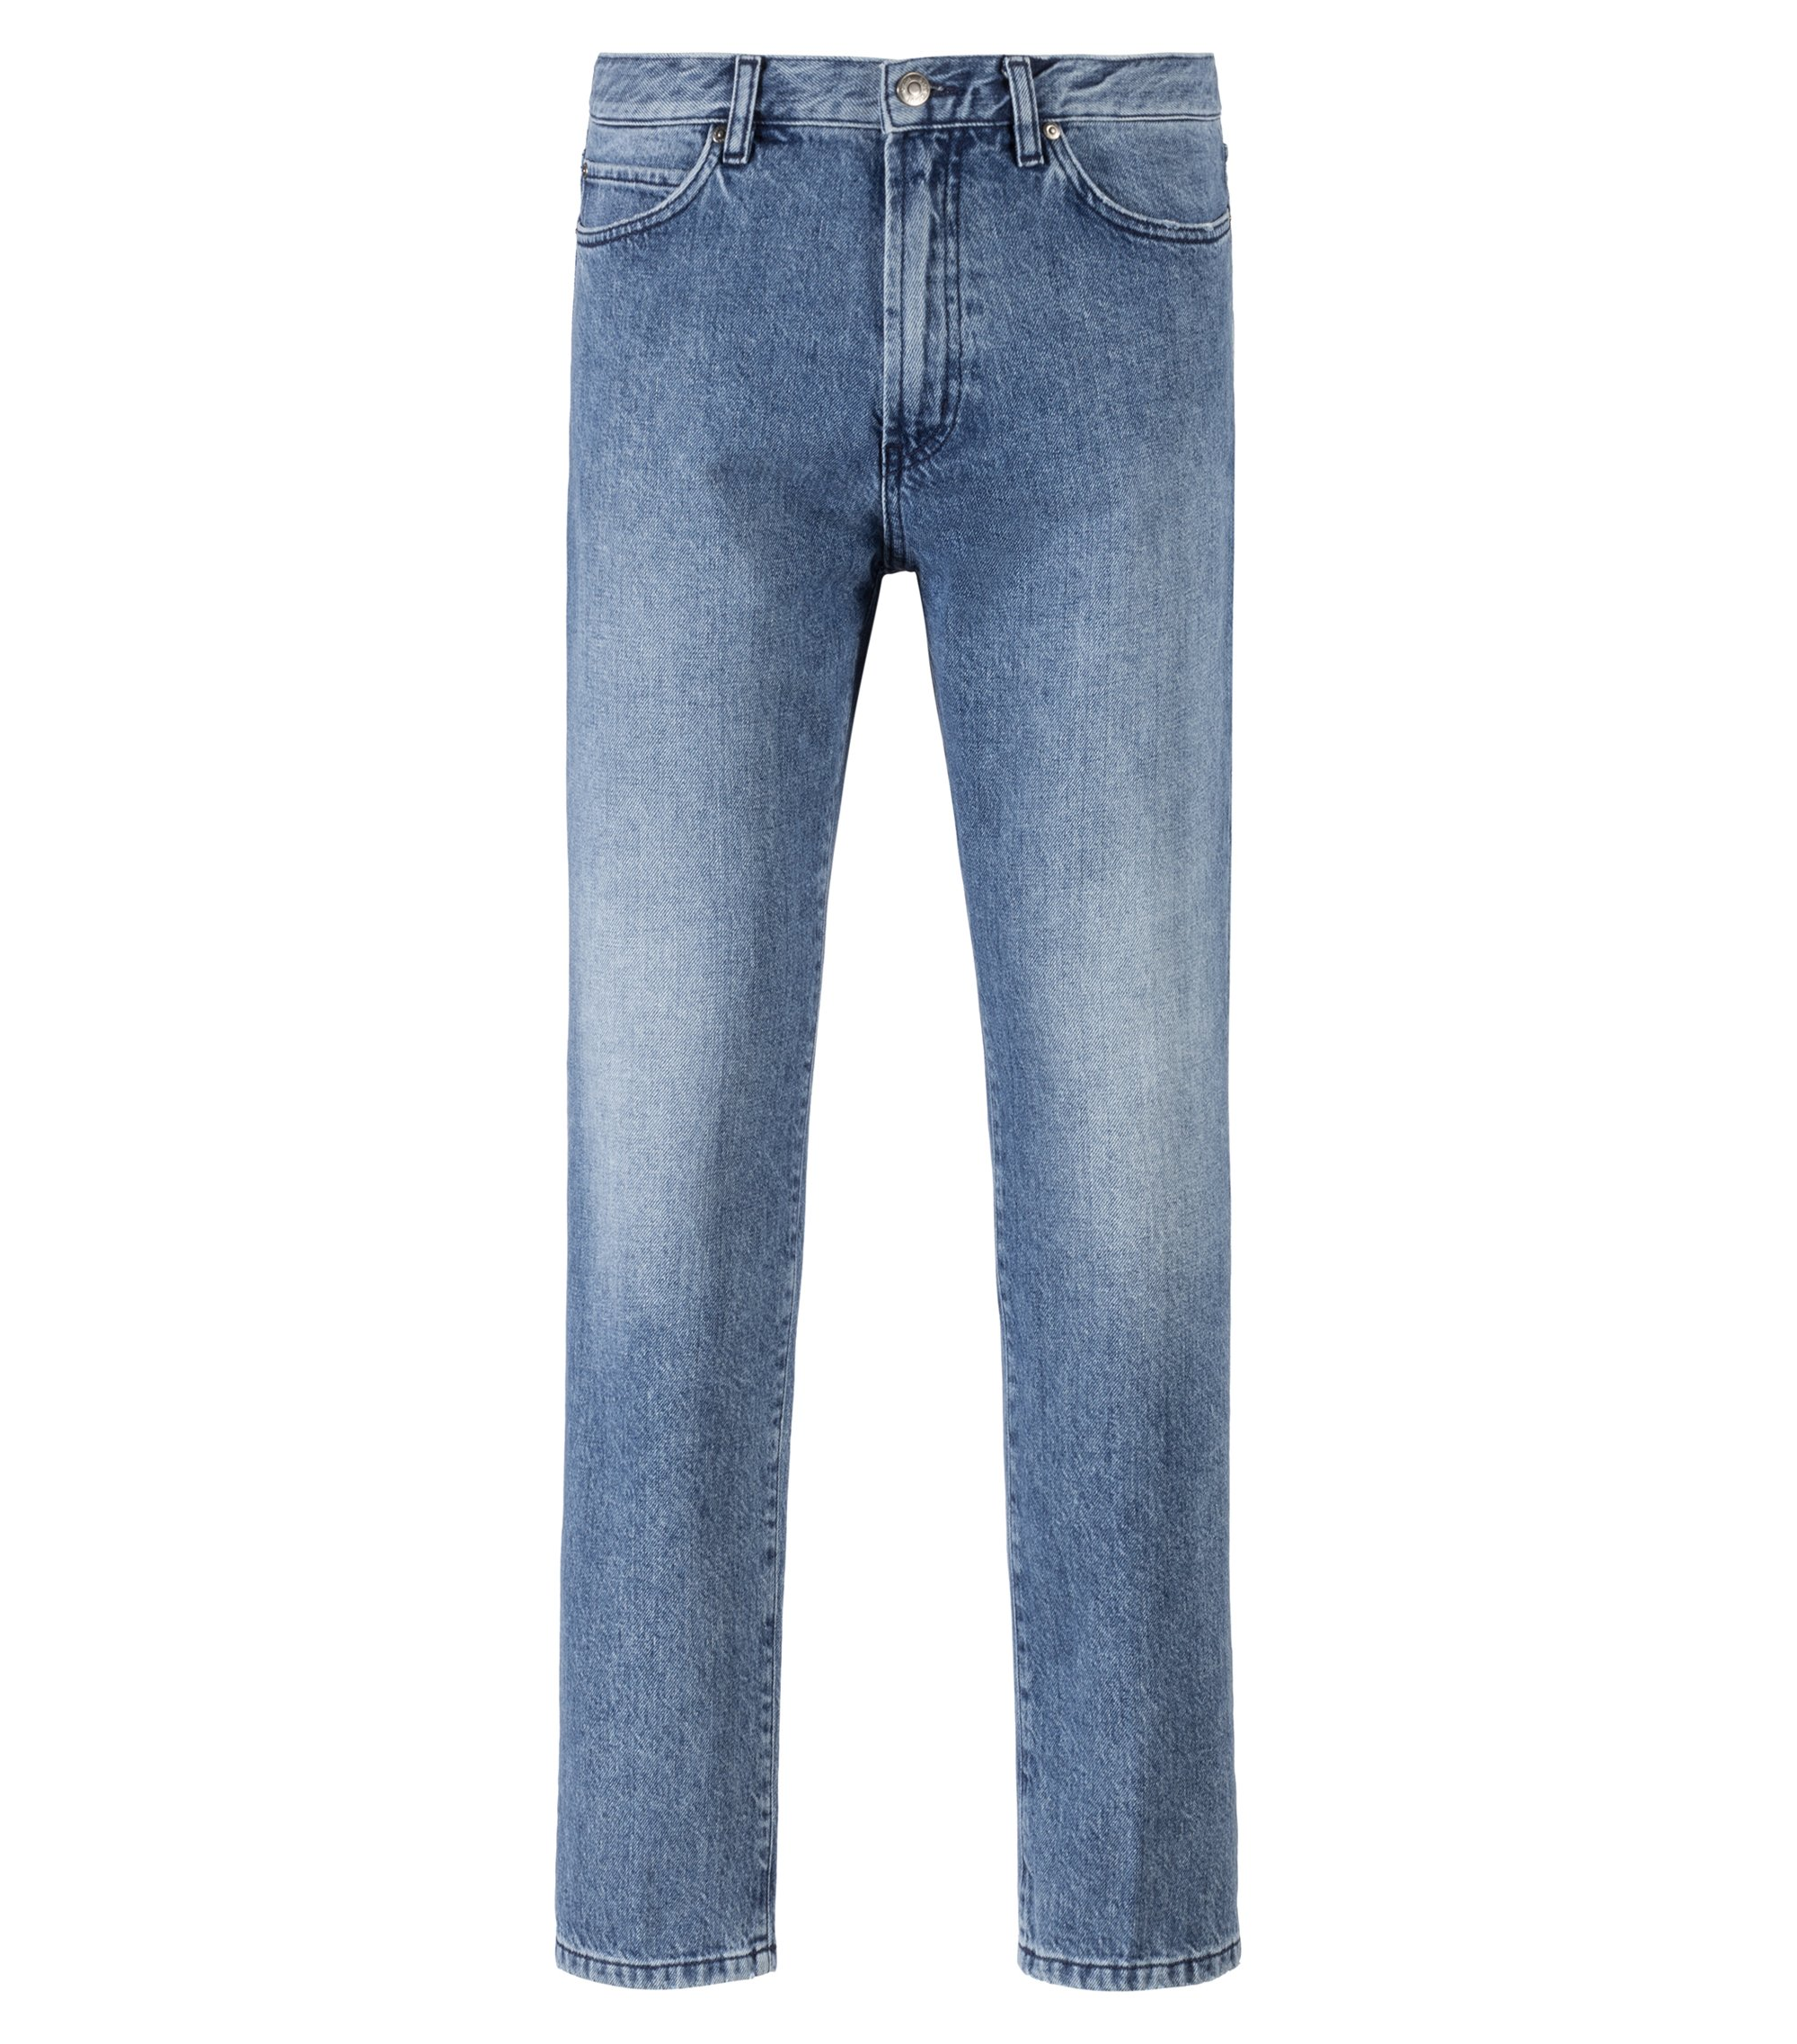 Jeans unisex regular fit in denim blu acceso realizzato in Italia, Blu